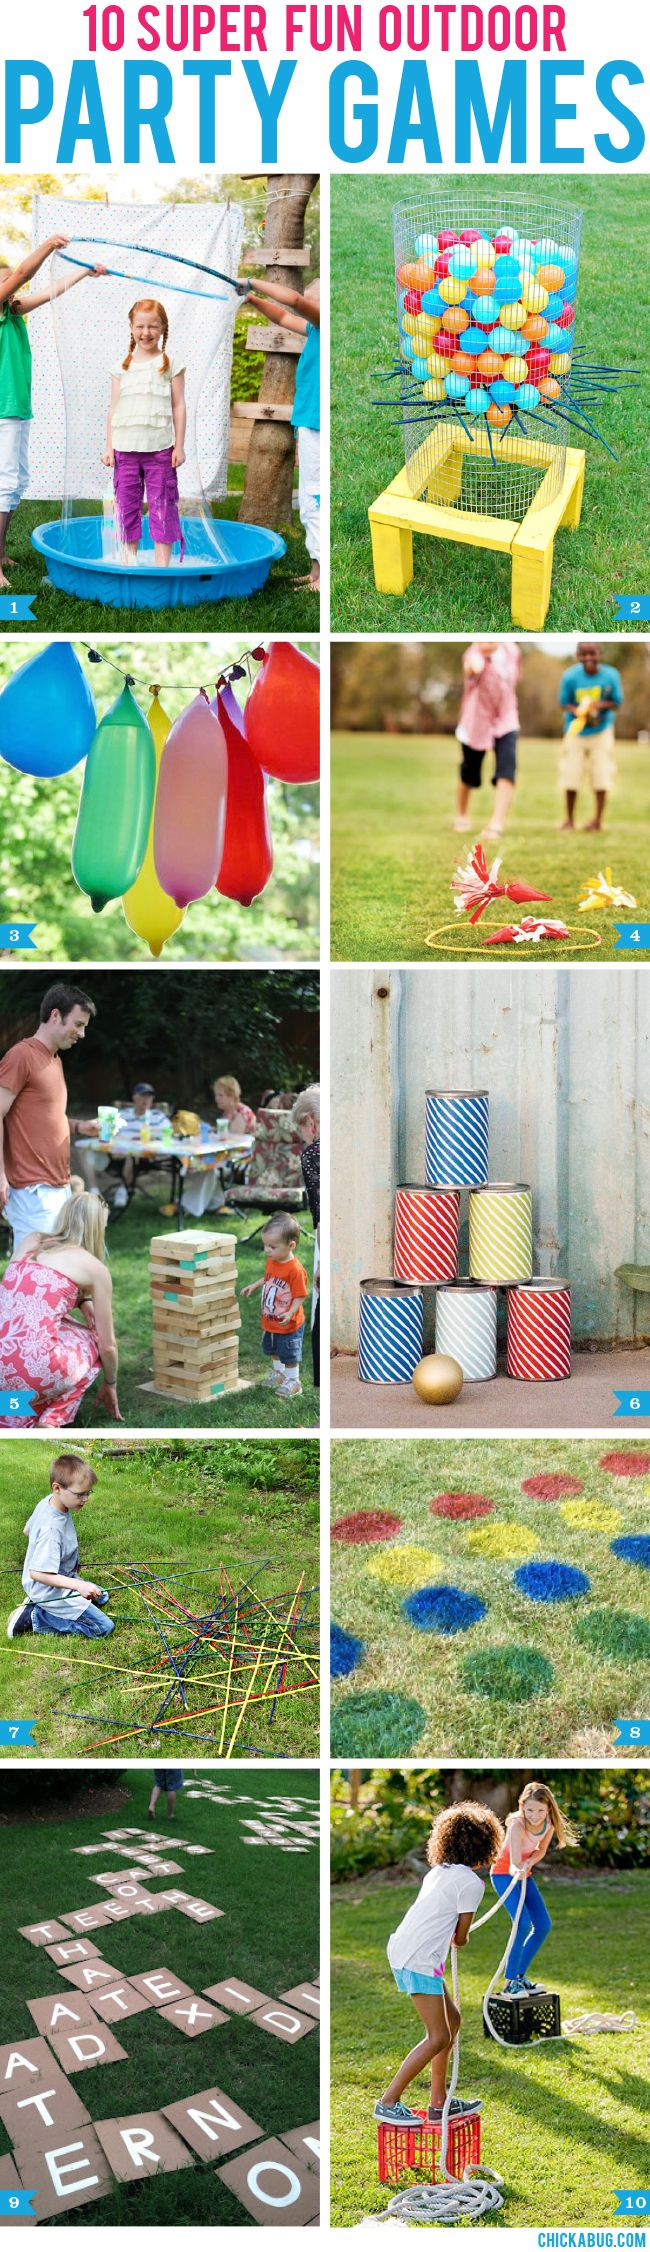 10 super fun outdoor party games   Par tay   Pinterest   Party games     10 super fun outdoor party games